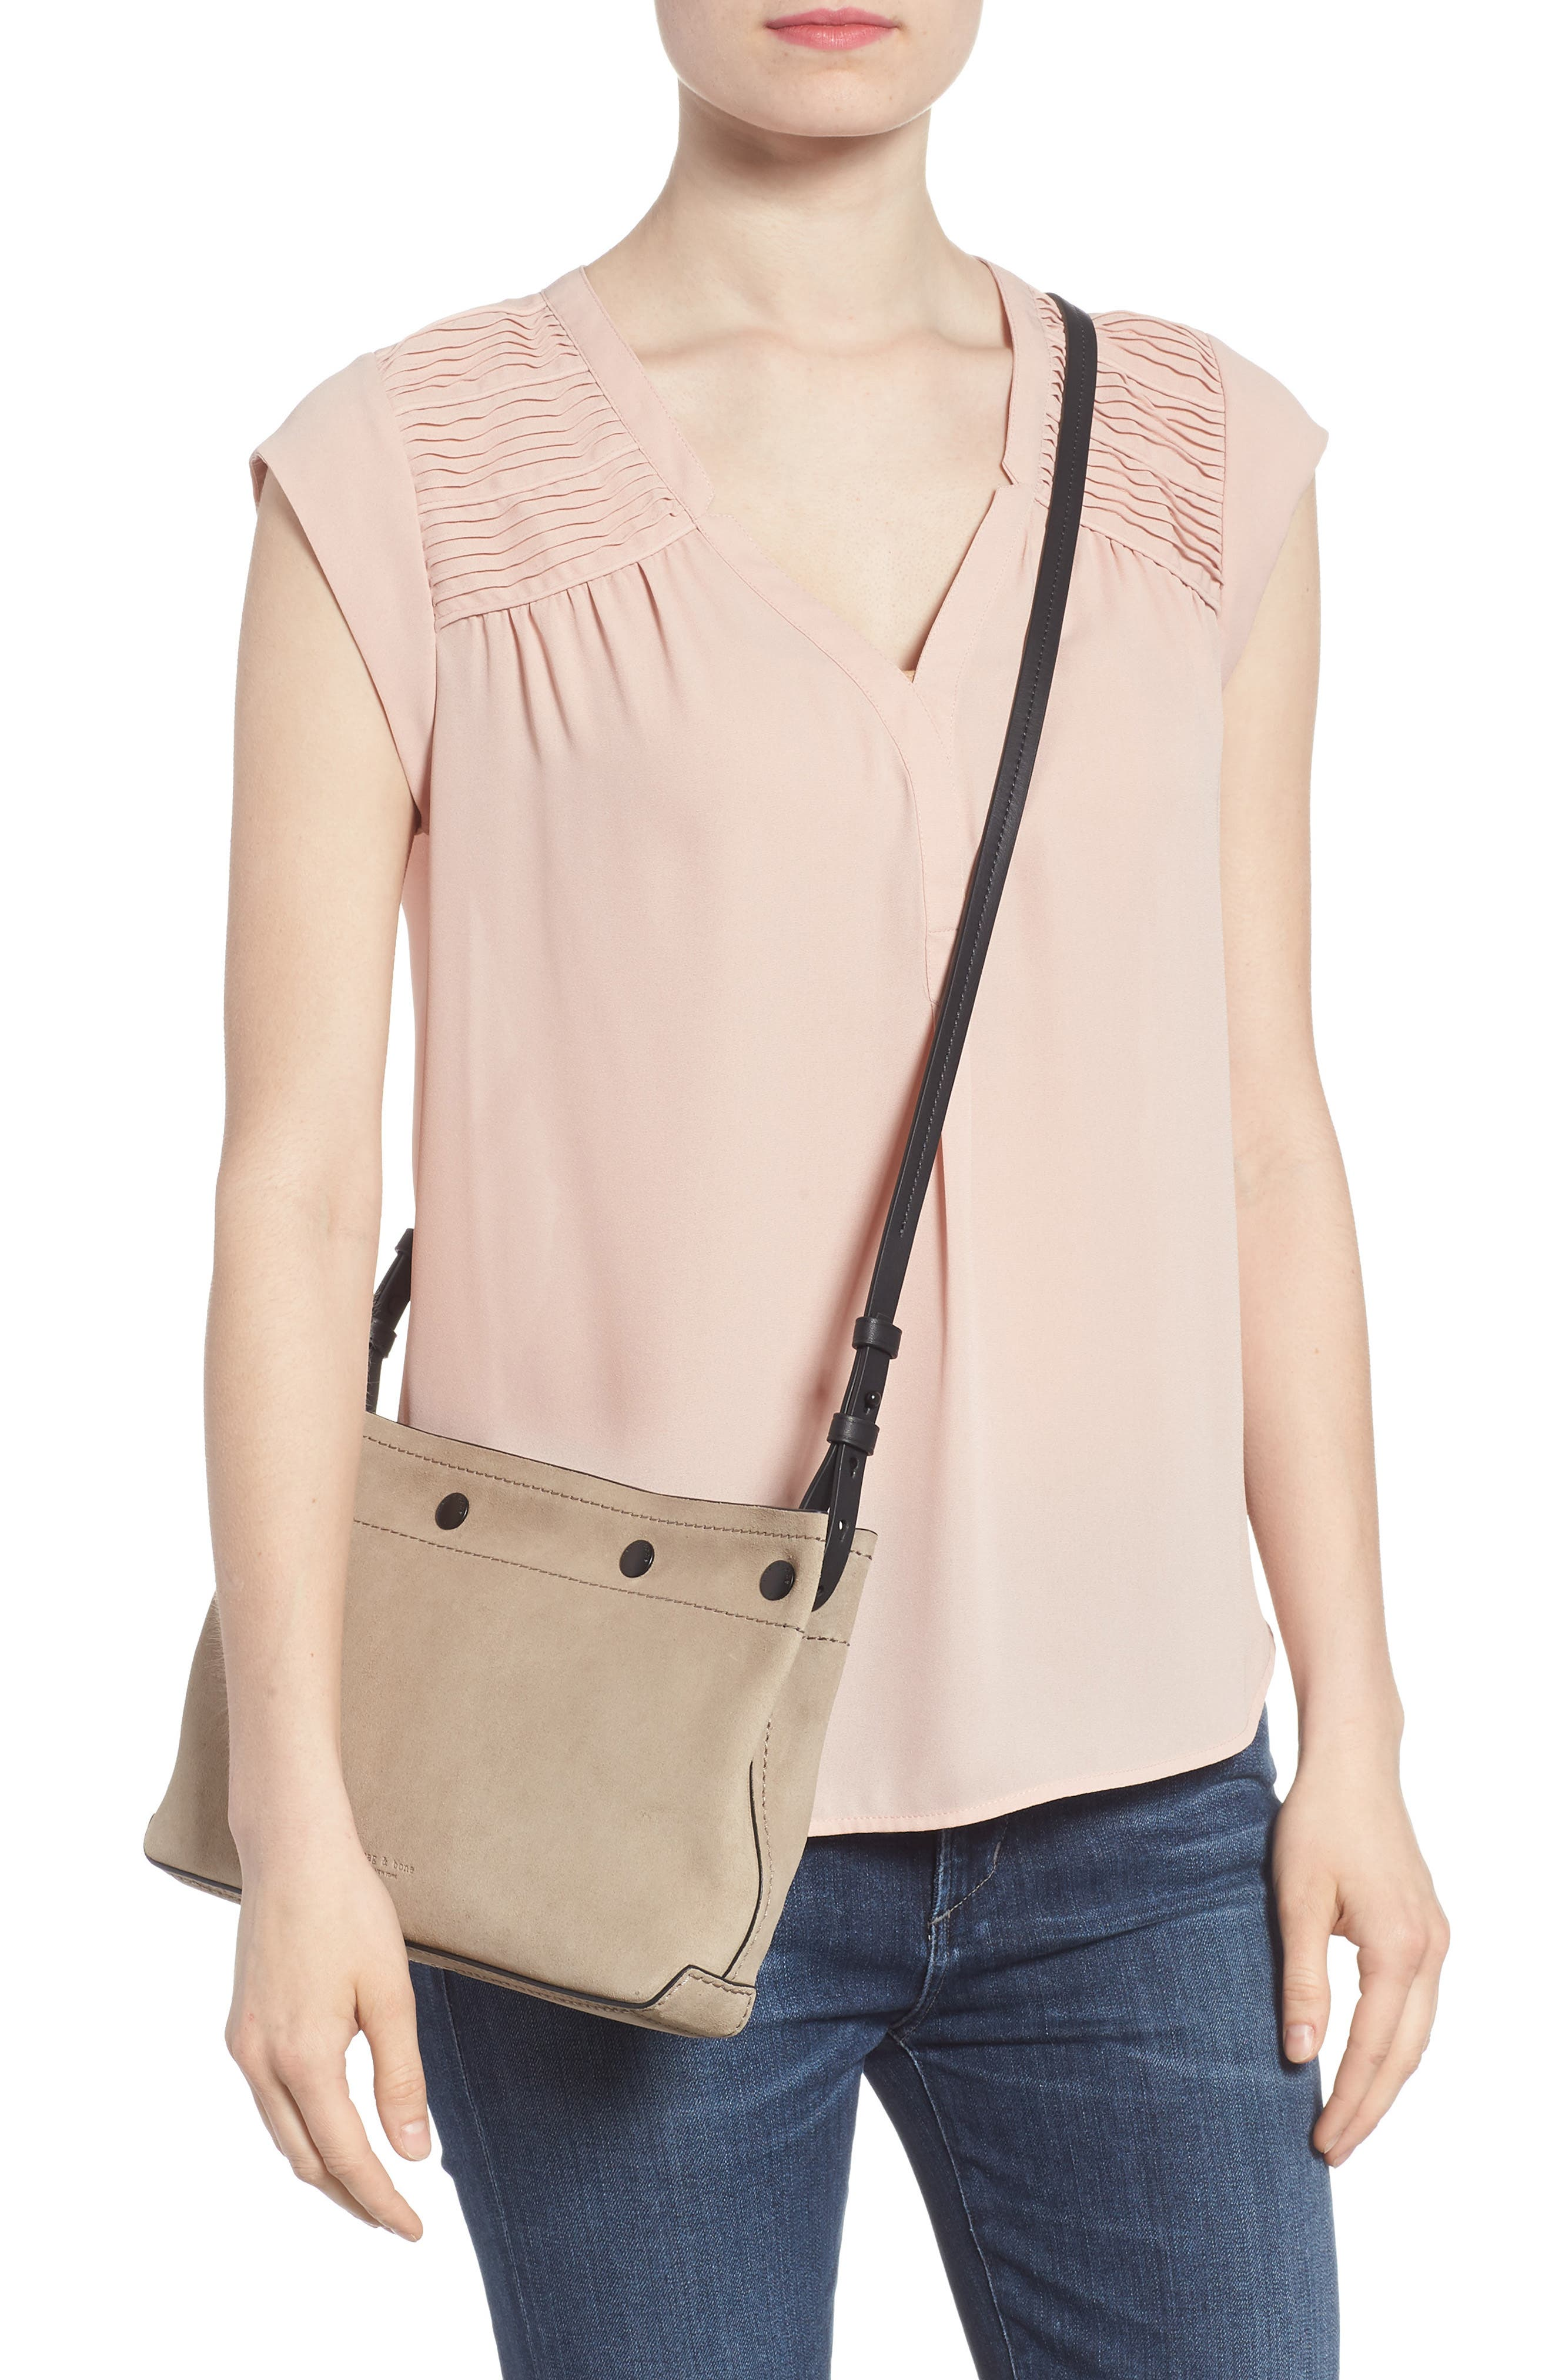 Compass Leather Crossbody Bag,                             Alternate thumbnail 2, color,                             WARM GREY SUEDE